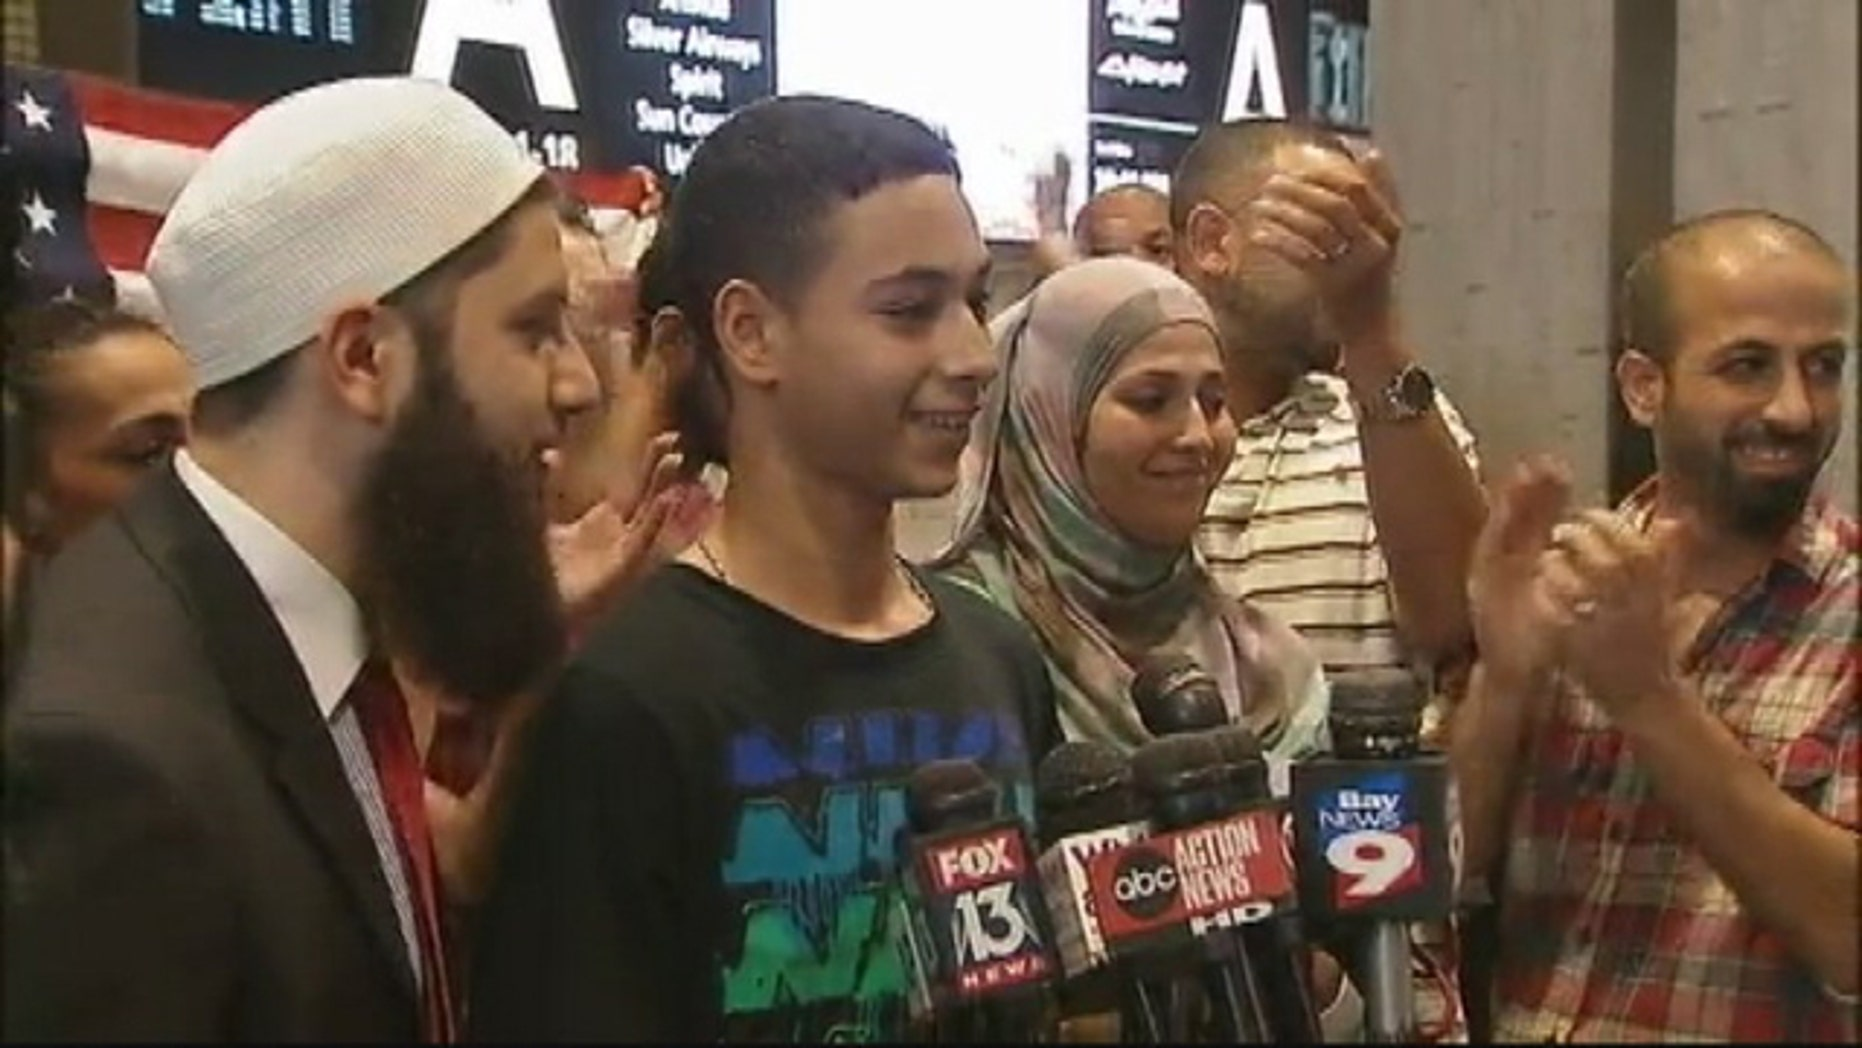 July 16, 2014: Tariq Khdeir addresses the media and supporters at Tampa International Airport after returning from Israel via New York (MyFoxTampaBay.com)